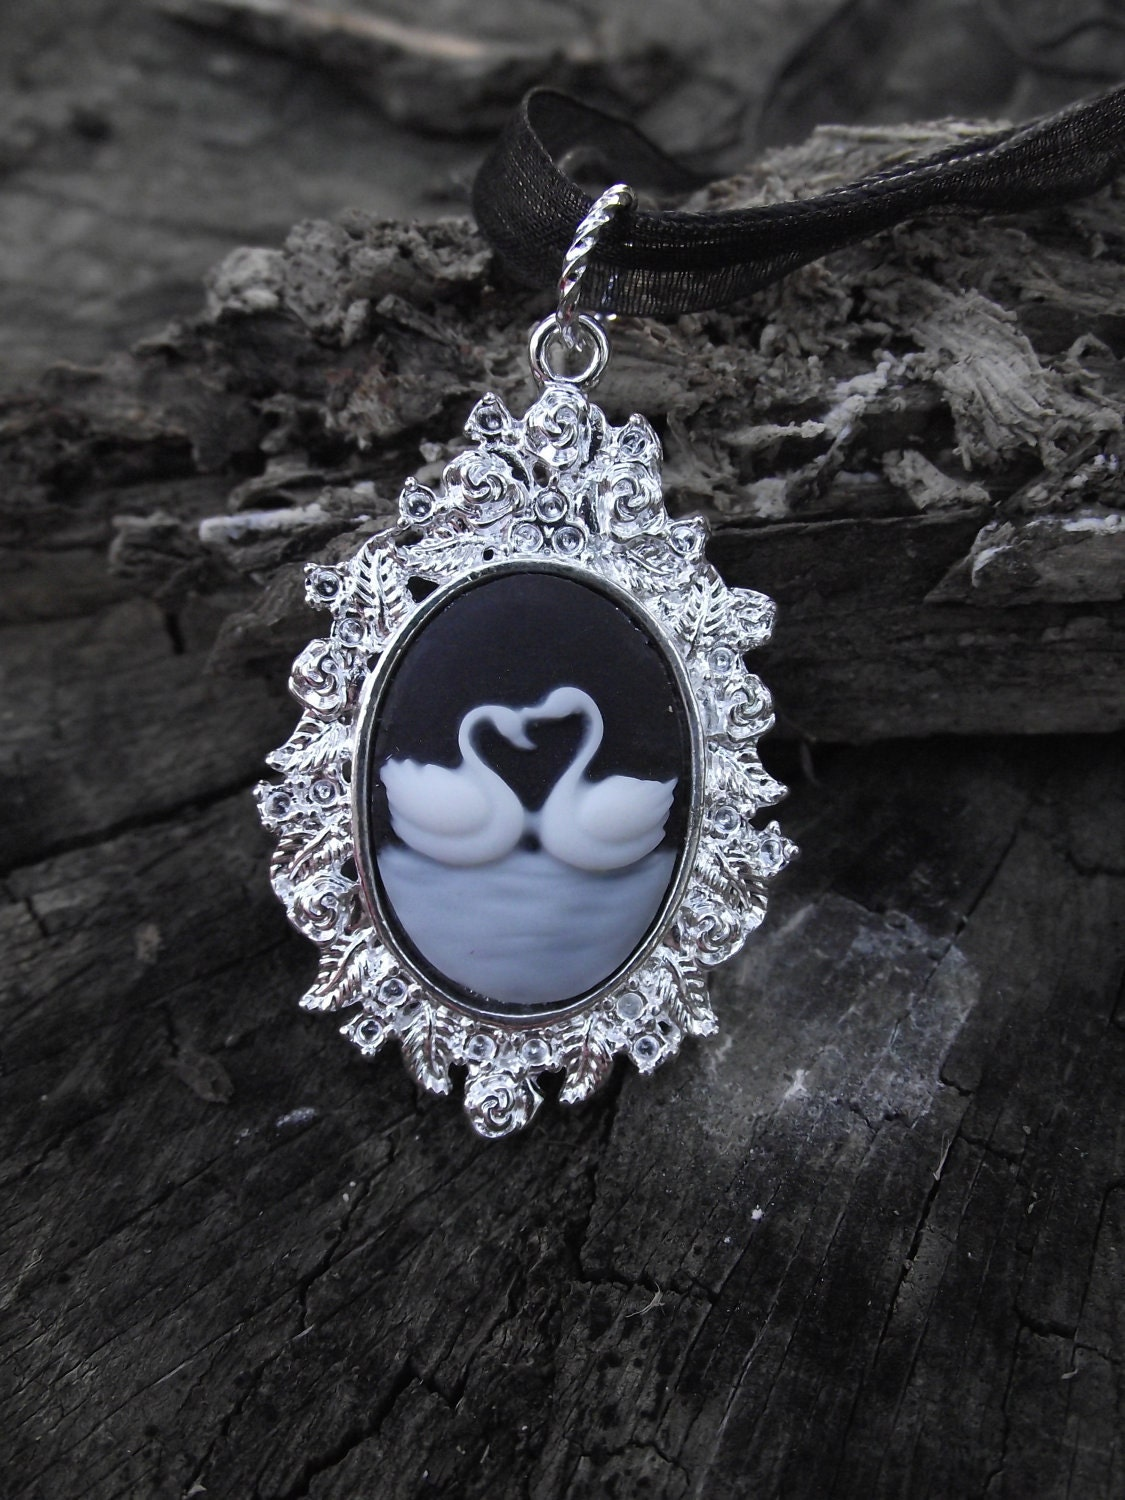 Swan Love - Black and White Kissing Swan Cameo Necklace